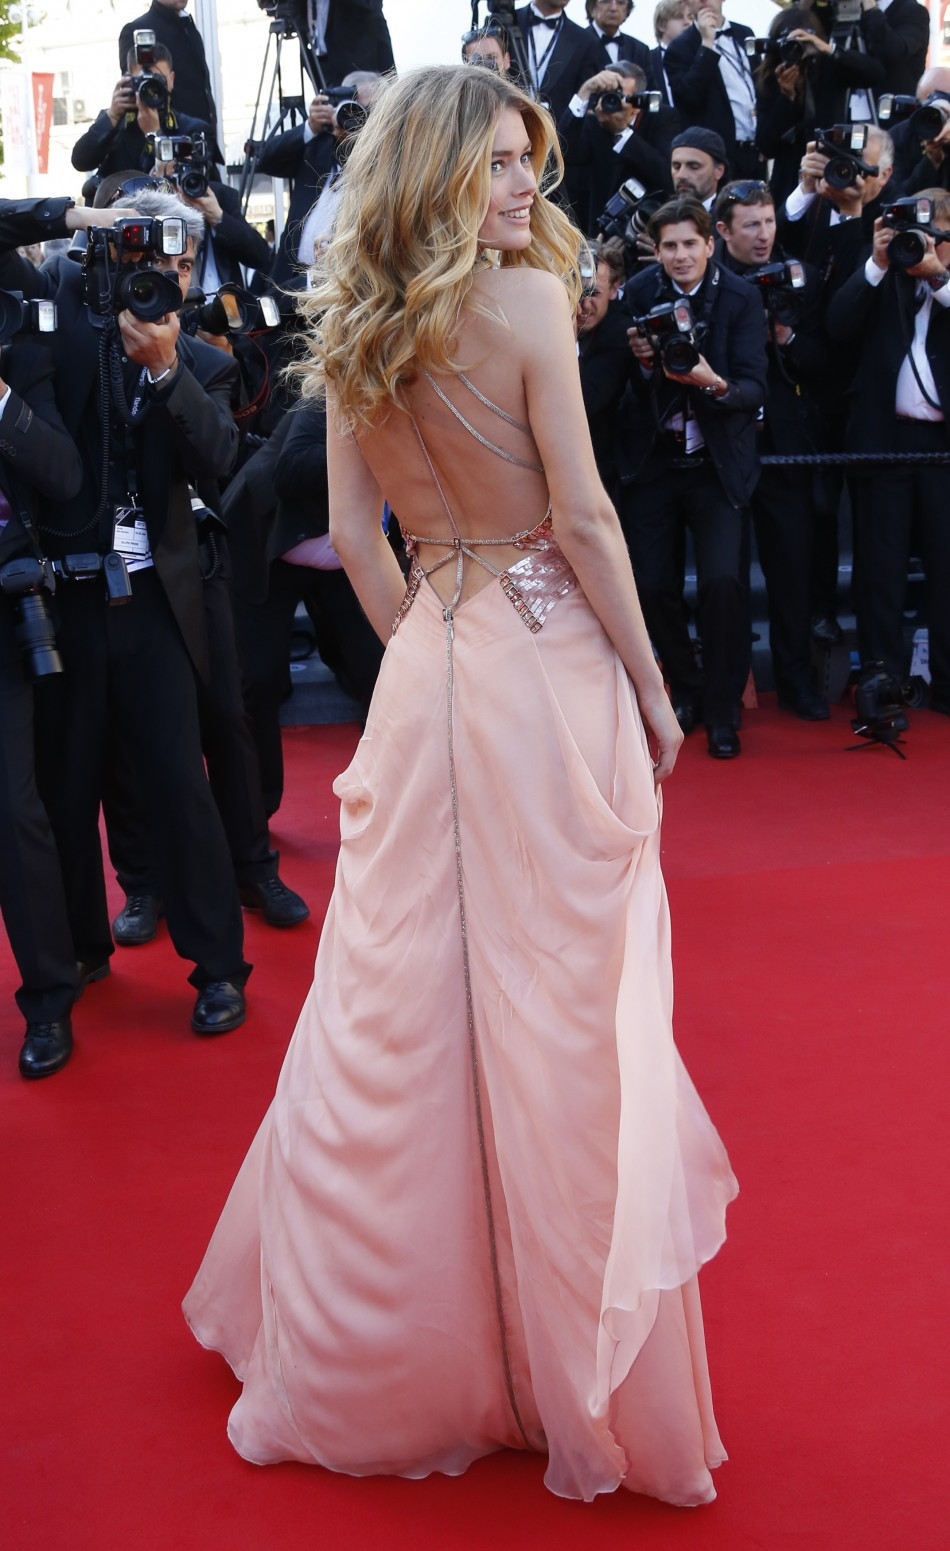 Model Doutzen Kroes poses on the red carpet as she arrives for the screening of the film 'Le Passe' (The Past) in competition during the 66th Cannes Film Festival in Cannes May 17, 2013.